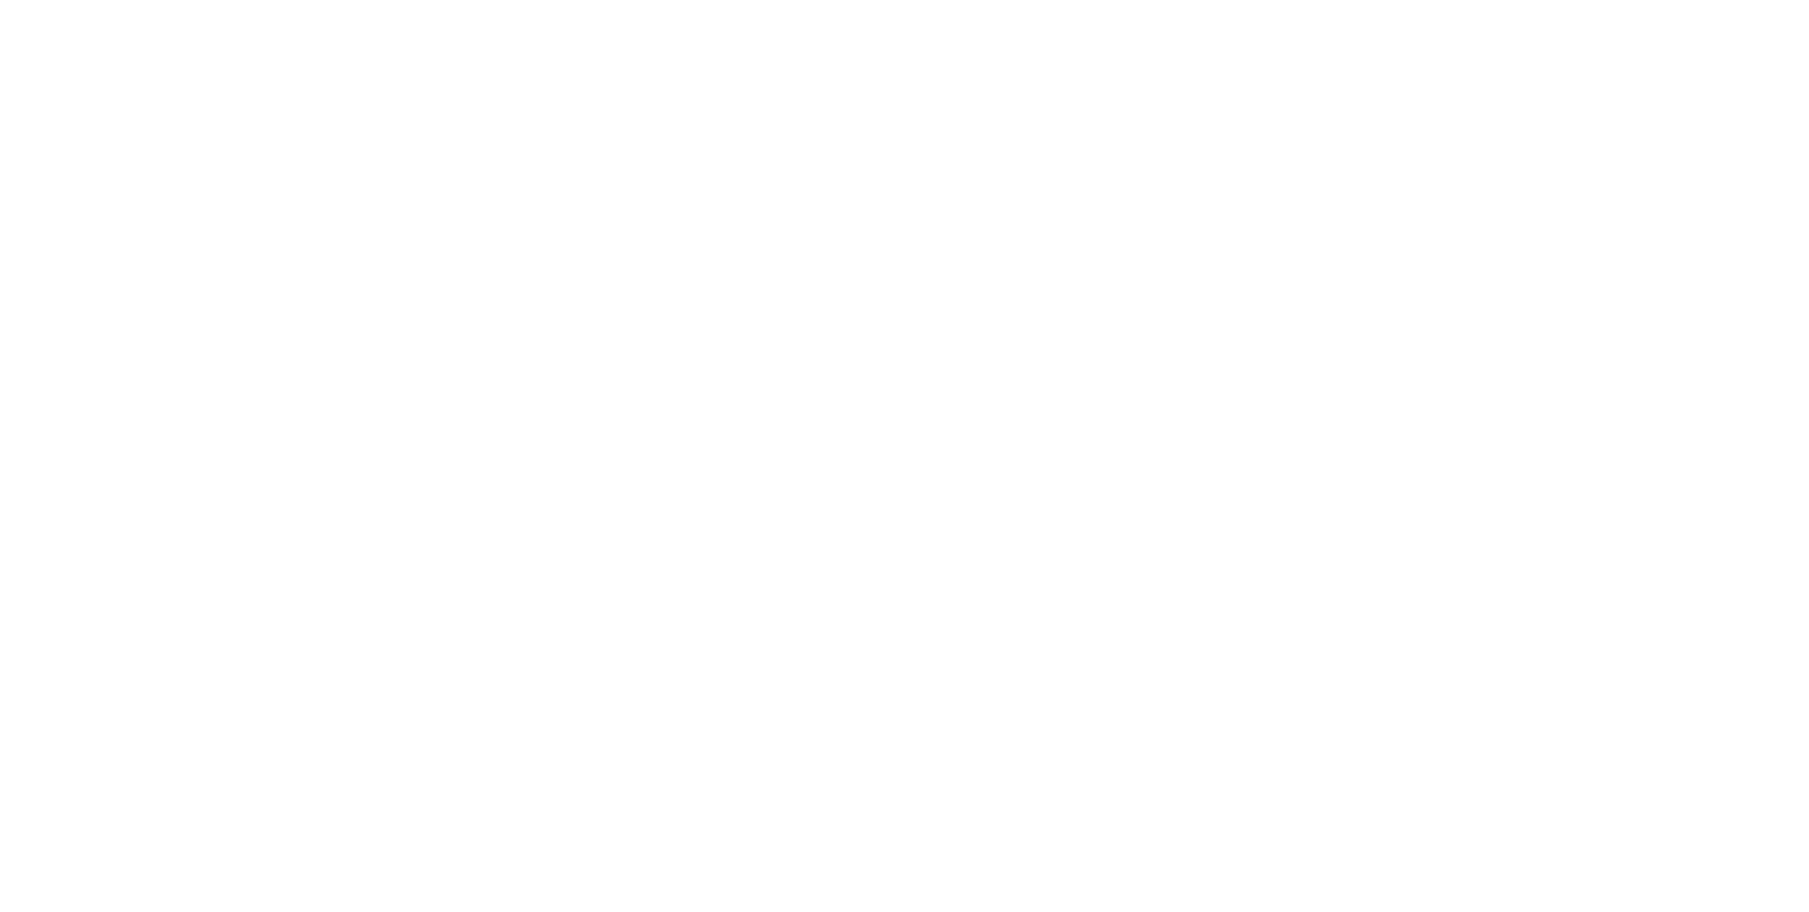 PODCASTMIND | Podcast Reviews and Recommendations: Finding the best